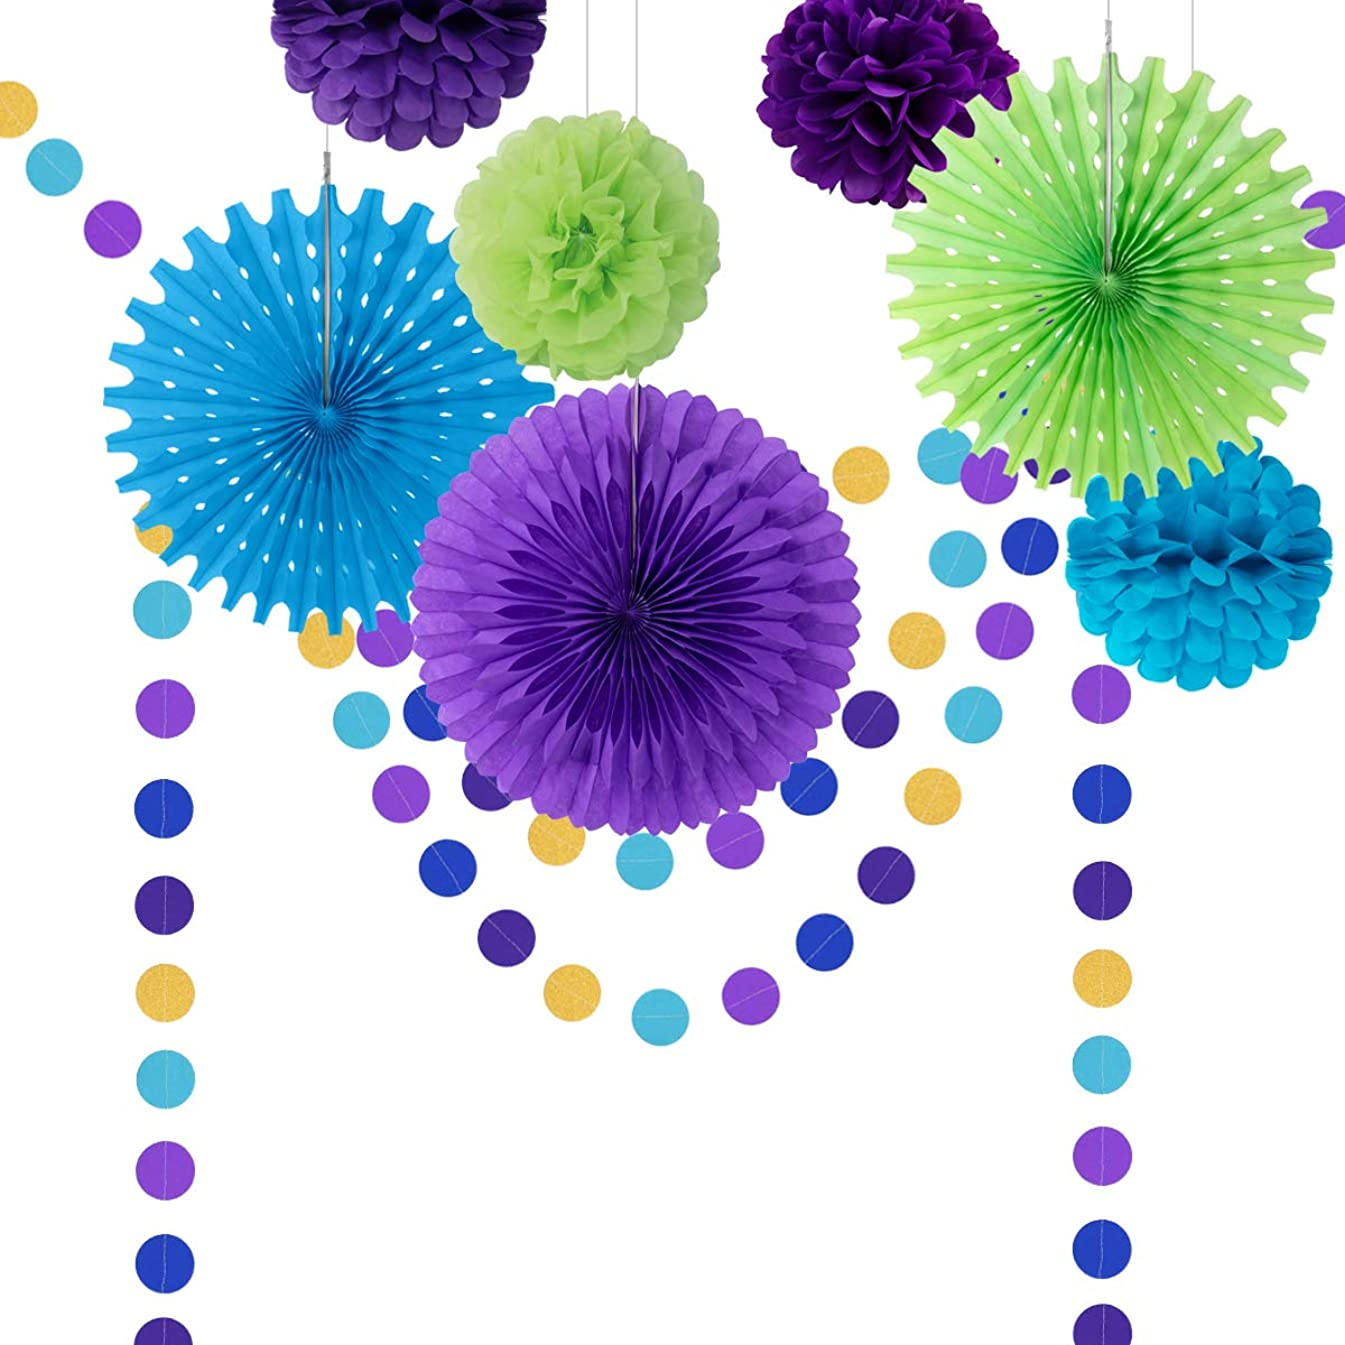 Paper Fan Party Decorations Kit, Peacock Theme Party Supplies Tissue Paper Fan Pom Pom Honeycomb Balls Circle Dot Garland Colorful Decor for Birthday Bridal Shower Under The Sea Party Decorations